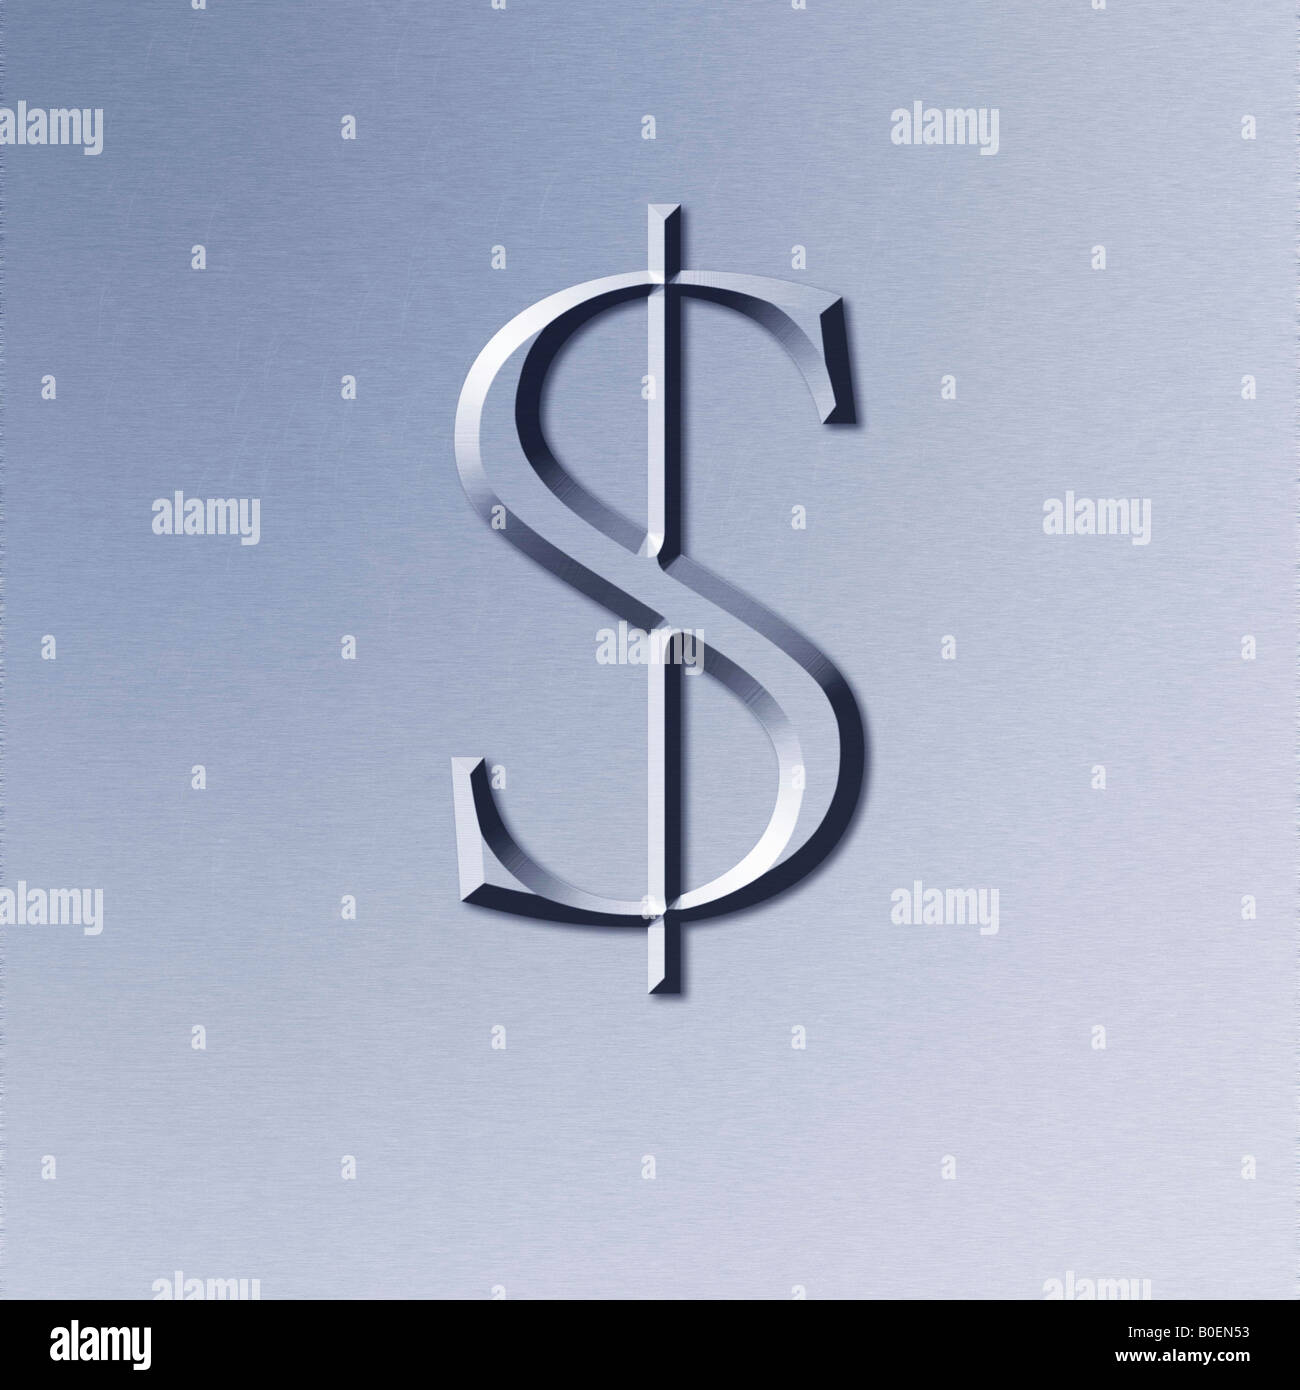 Mexican Canadian Dollar Symbol Stock Photos Mexican Canadian